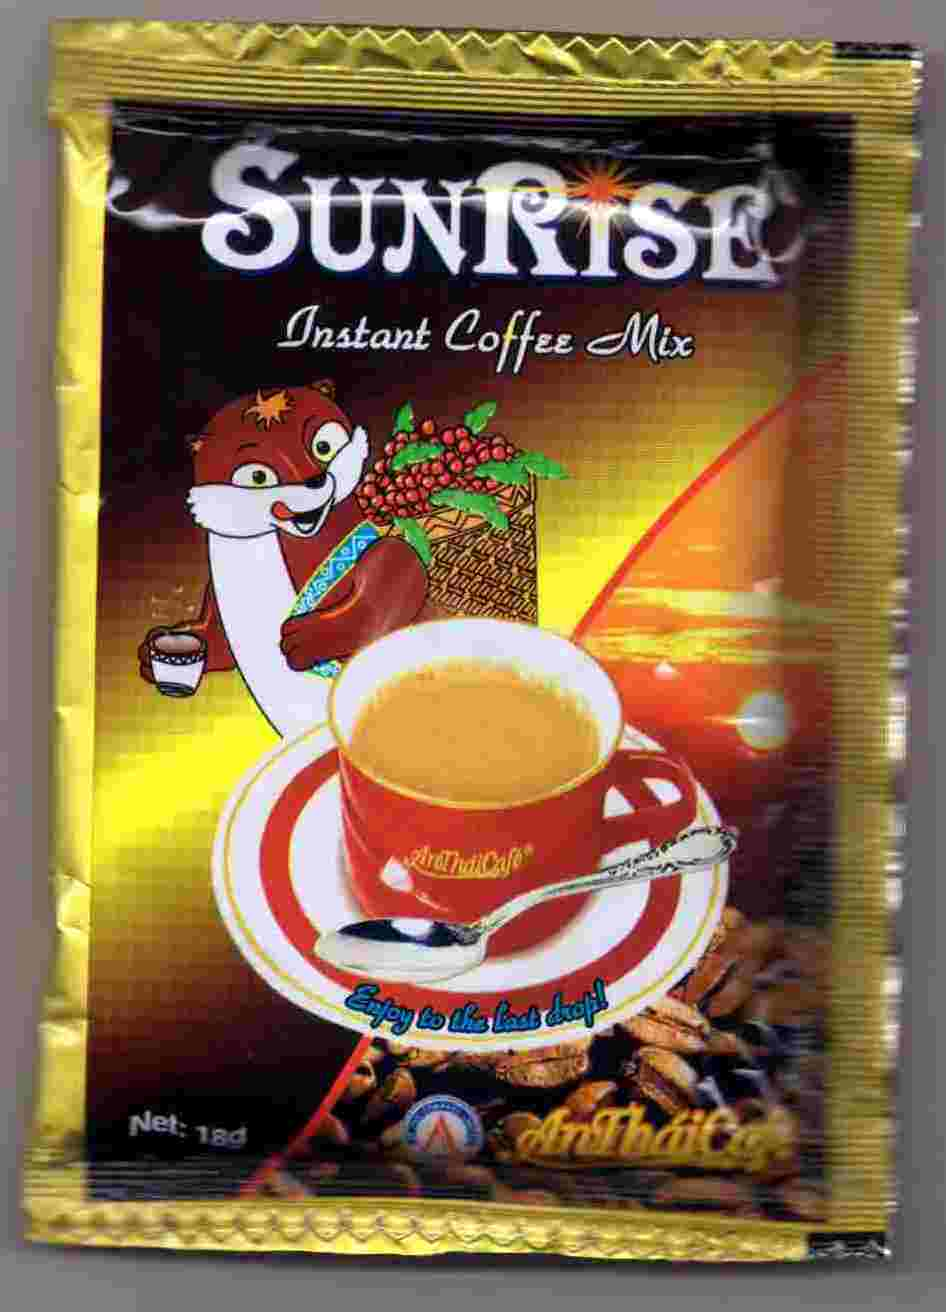 Sunrise 3 in 1 coffee mix